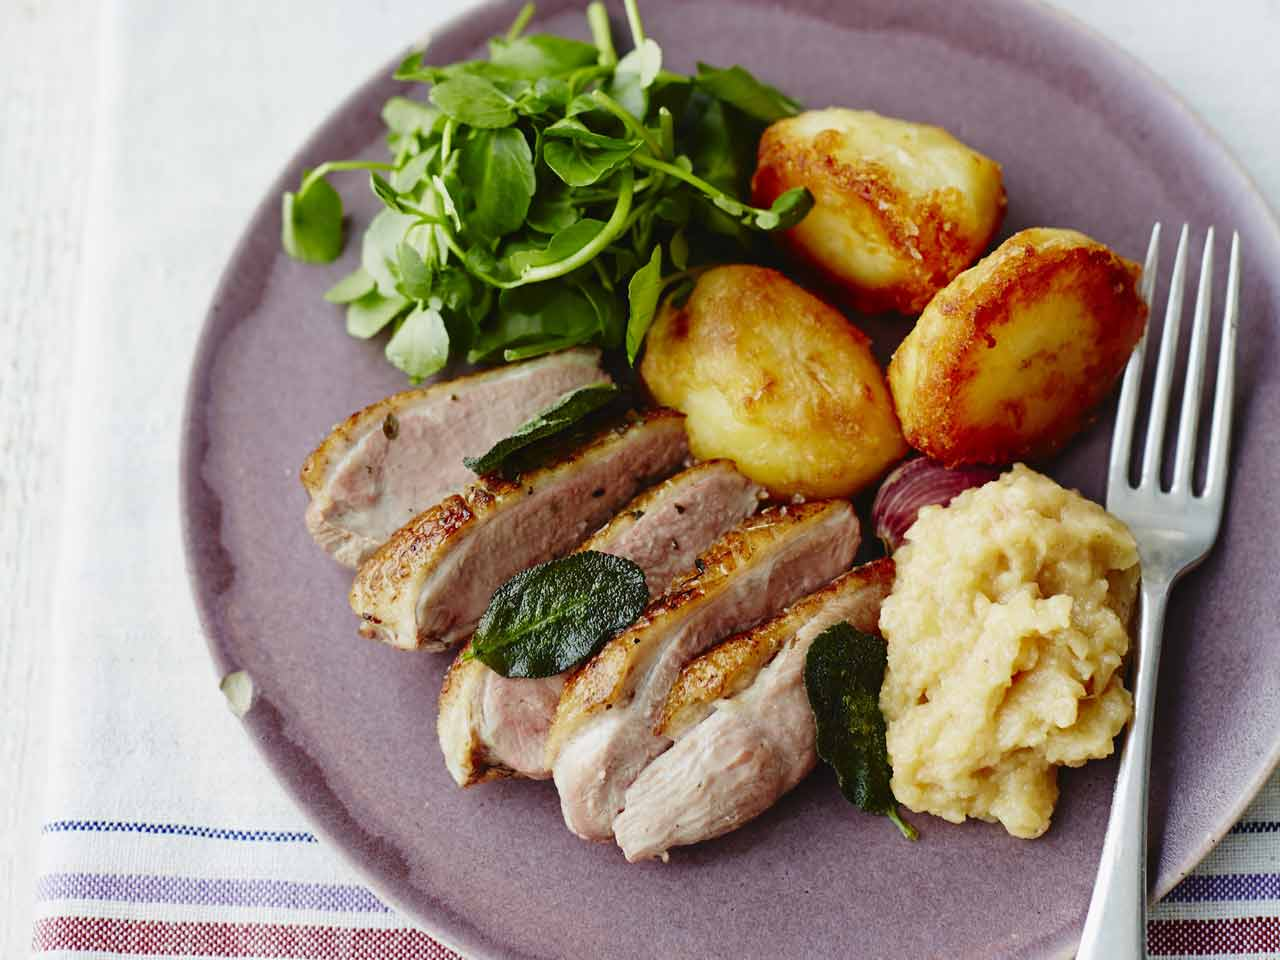 Crispy duck breast with apple sauce